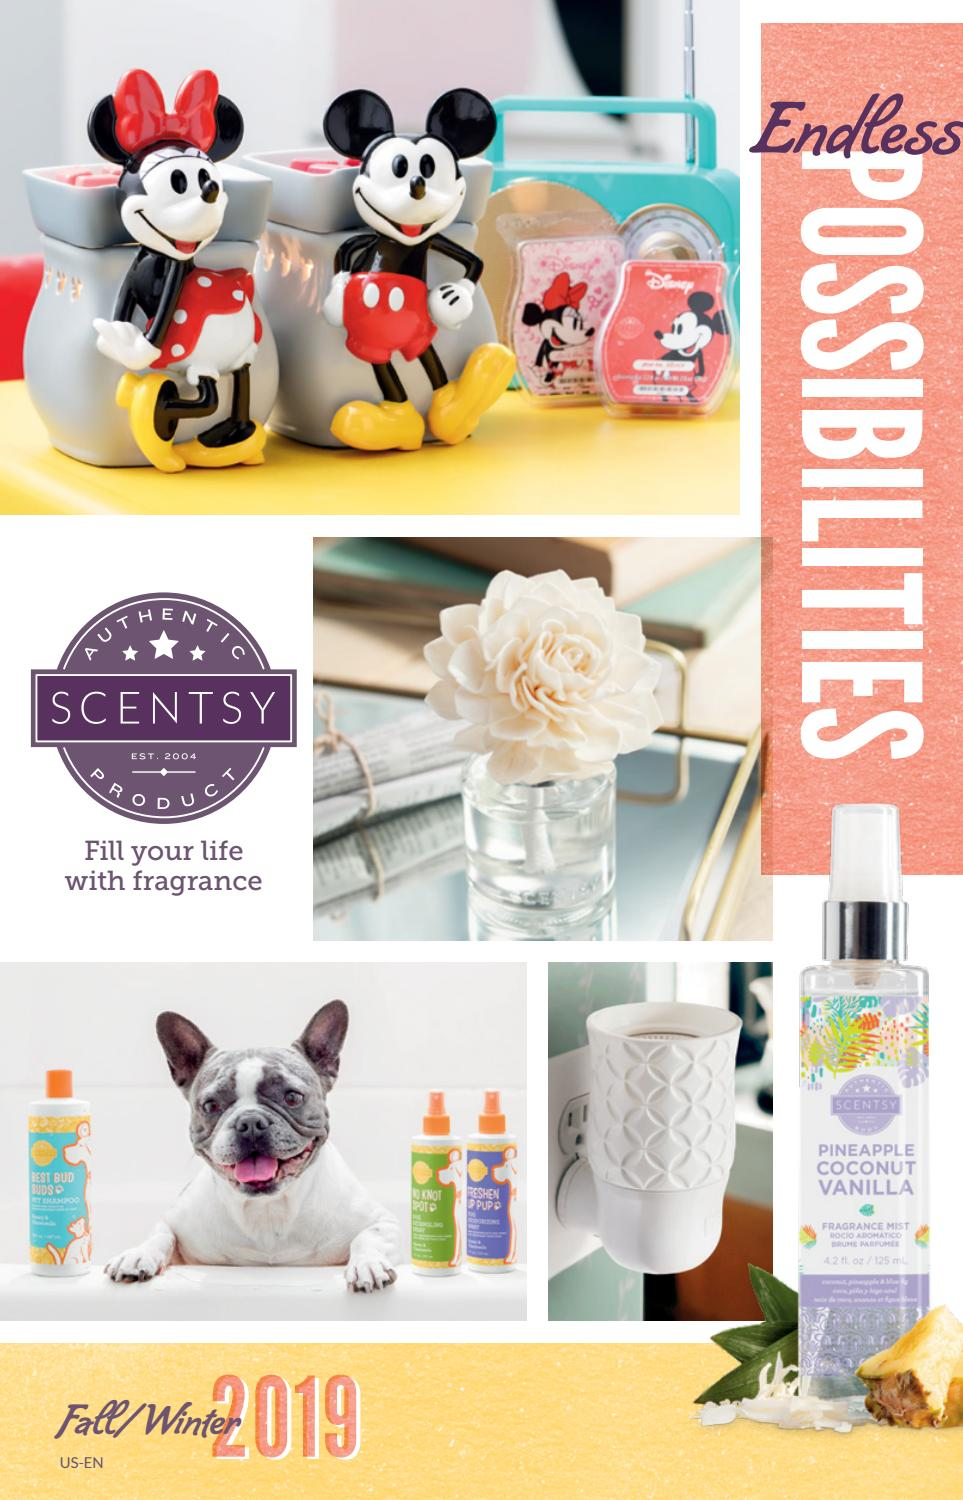 Scentsy Fall Winter 2019 Catalog By Ashley Templin Issuu